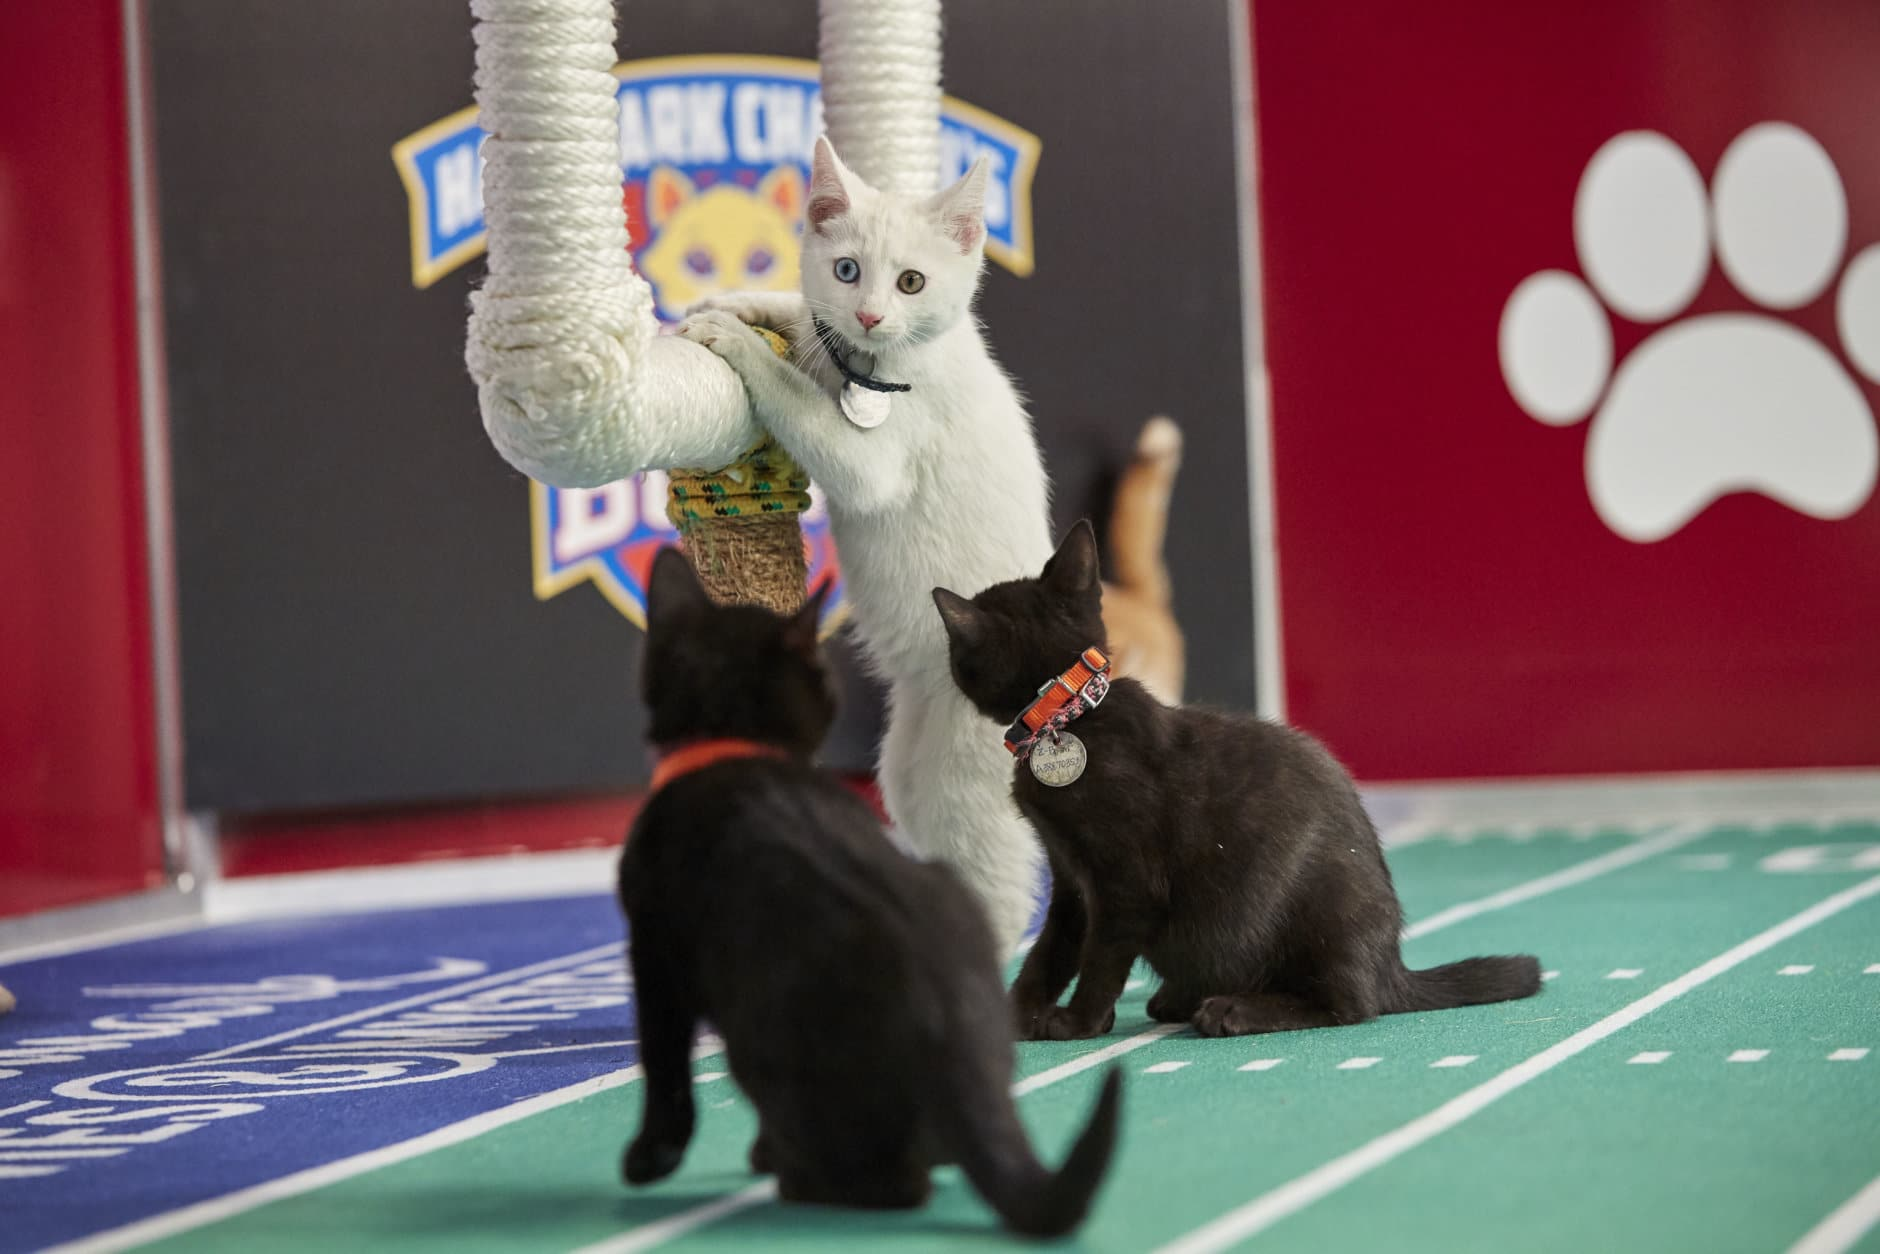 """""""Kitten Bowl"""" is a feline catstravaganza presented in association with North Shore Animal League America (the nation's largest no-kill shelter and animal adoption organization) and Last Hope Animal Rescue and Rehabilitation. Hosted by Beth Stern, TV personality and national spokesperson for North Shore Animal League America.  (Courtesy Crown Media United States LLC/Keith MacDonald)"""